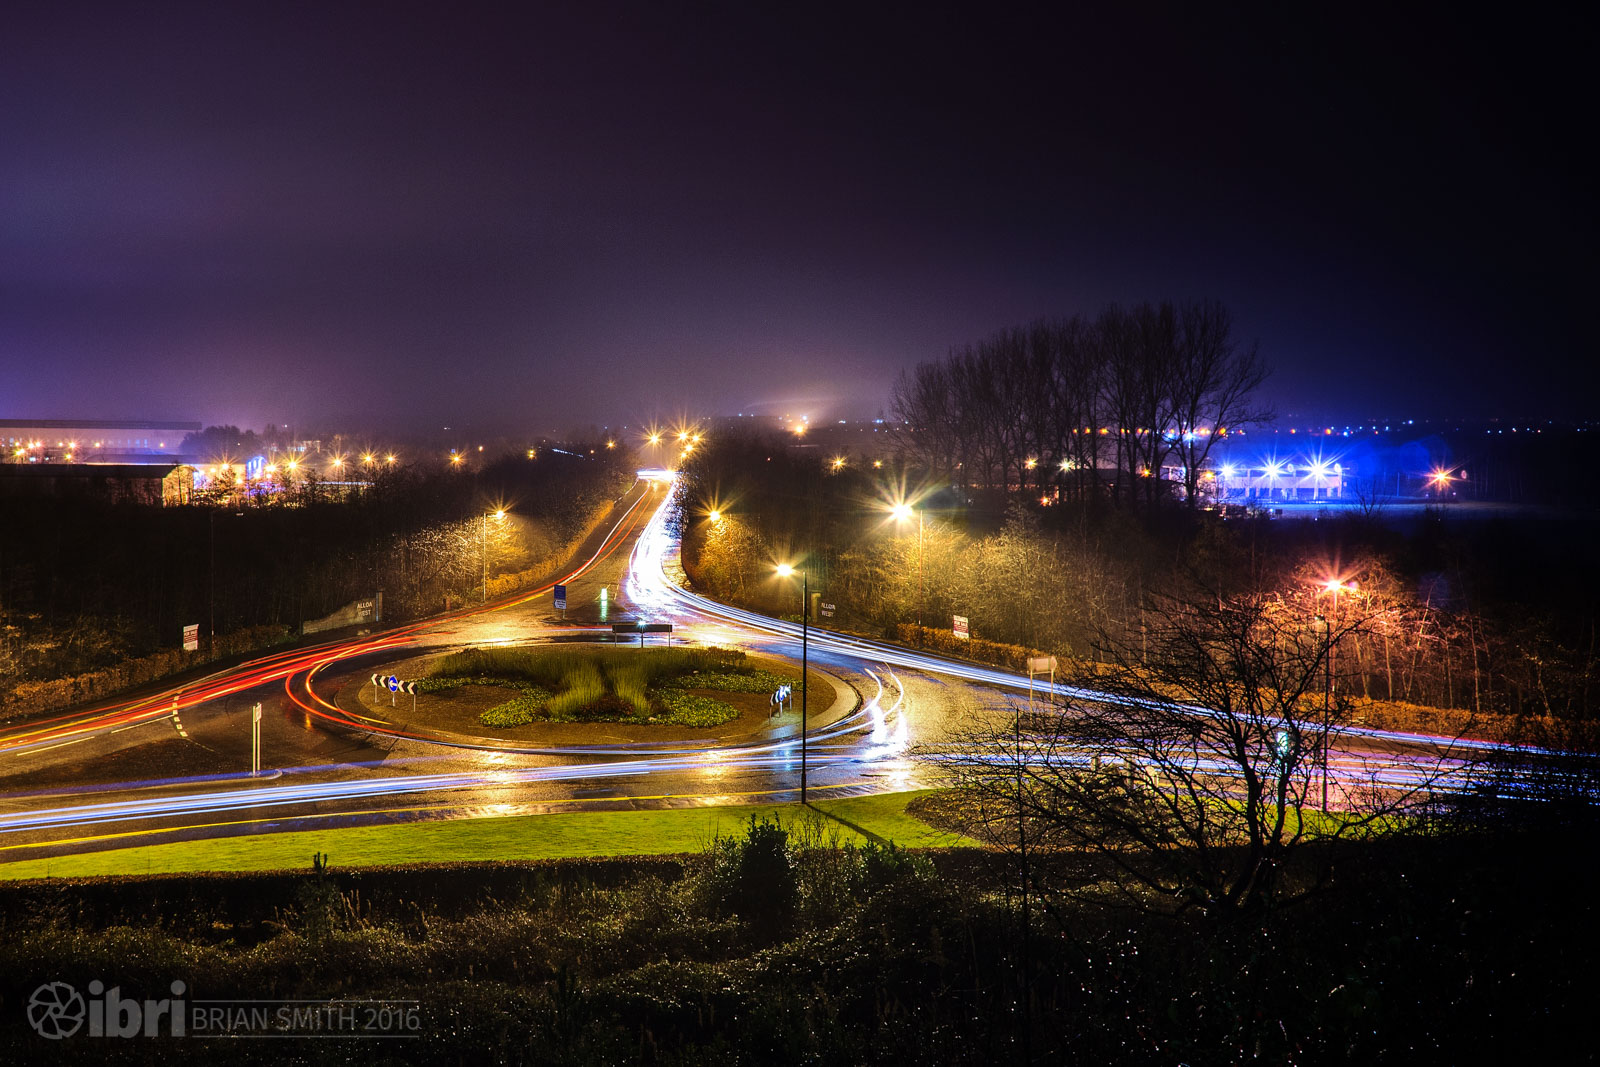 Five images combined to make the roundabout look a bit busier.